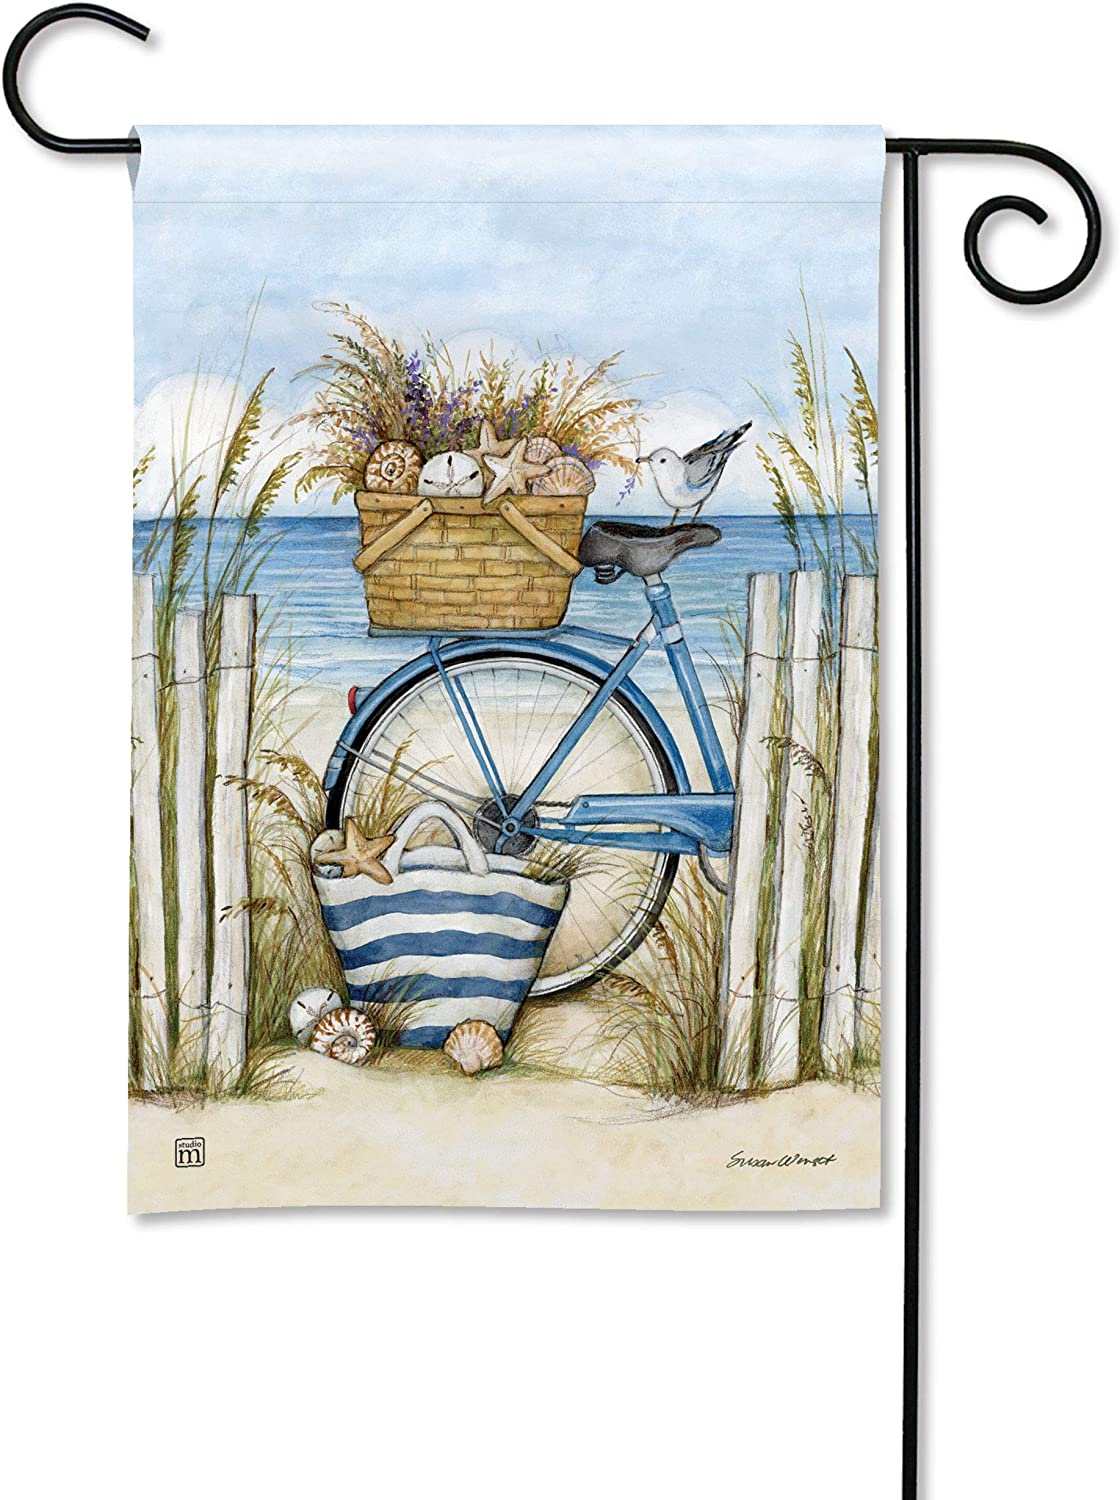 BreezeArt Studio M Beach Bike Decorative Garden Flag – Premium Quality, 12.5 x 18 Inches